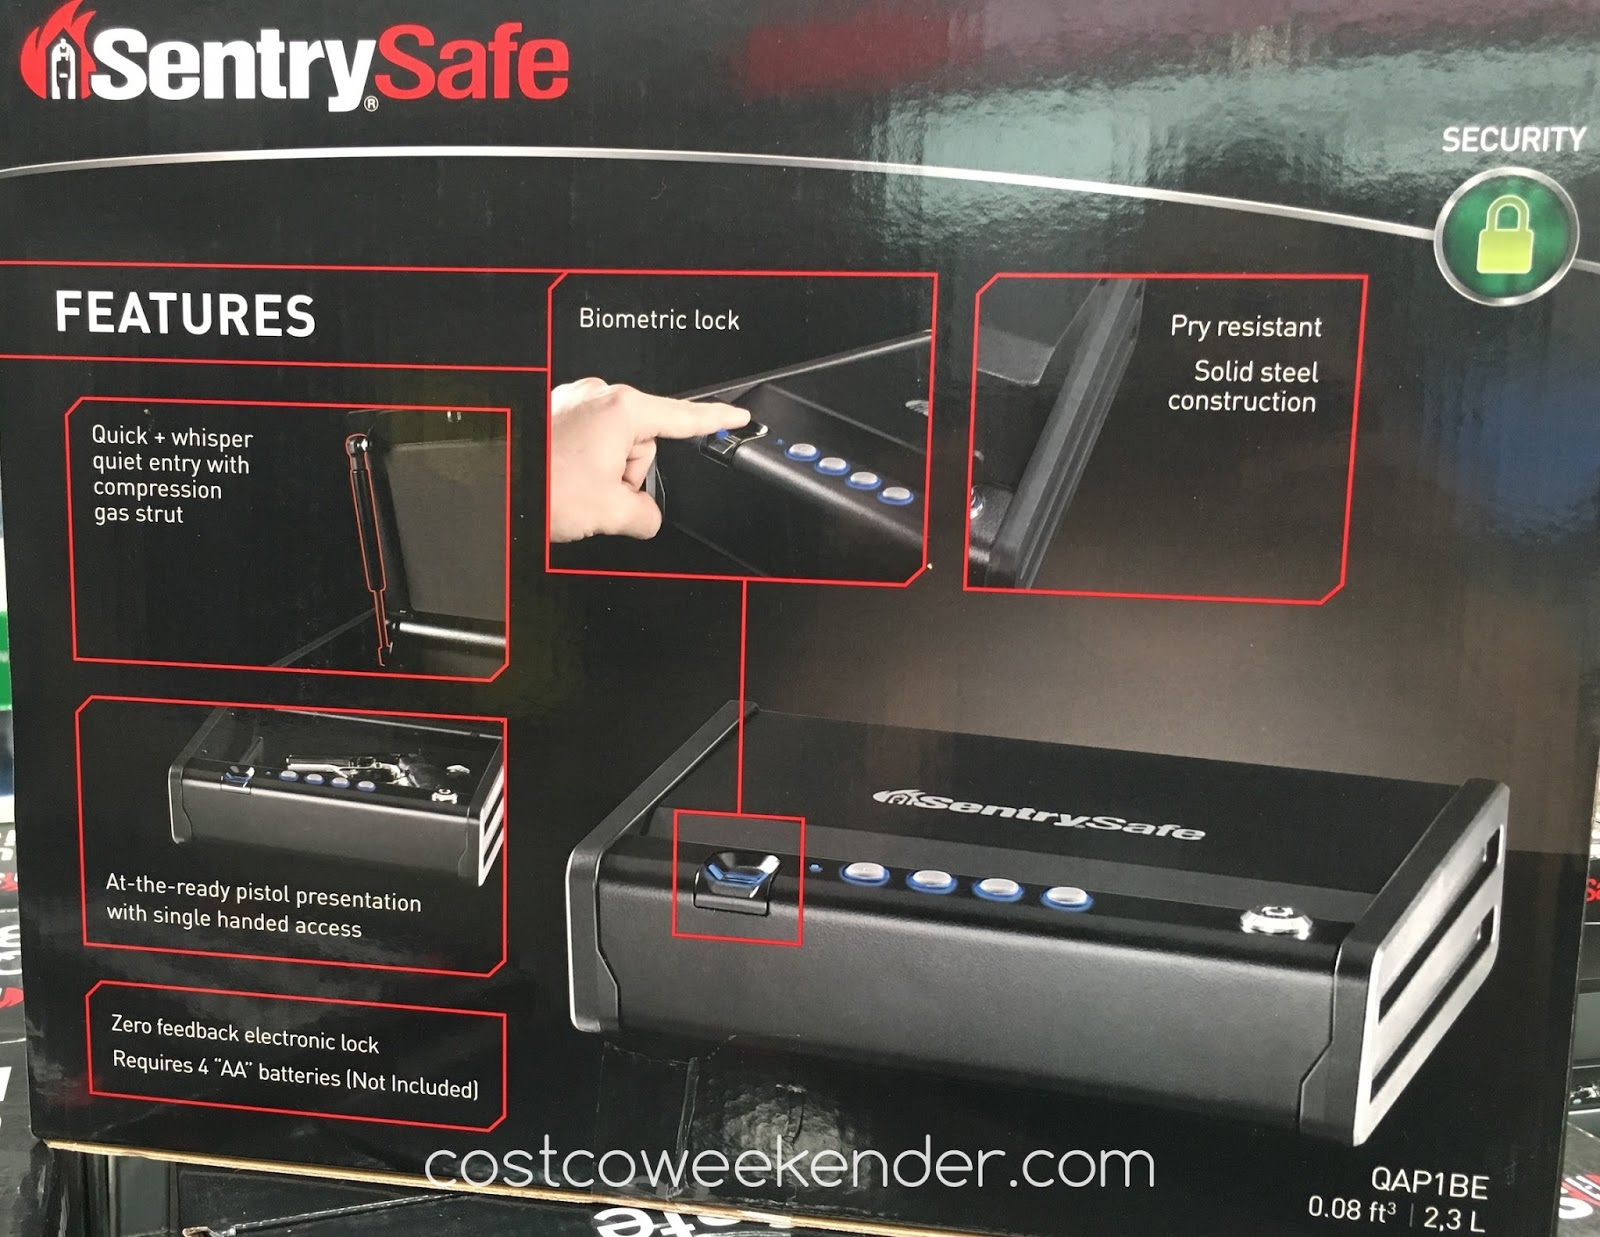 Costco 841165 - SentrySafe Quick Access Biometric Pistol Safe - keeps your firearm away from the wrong hands